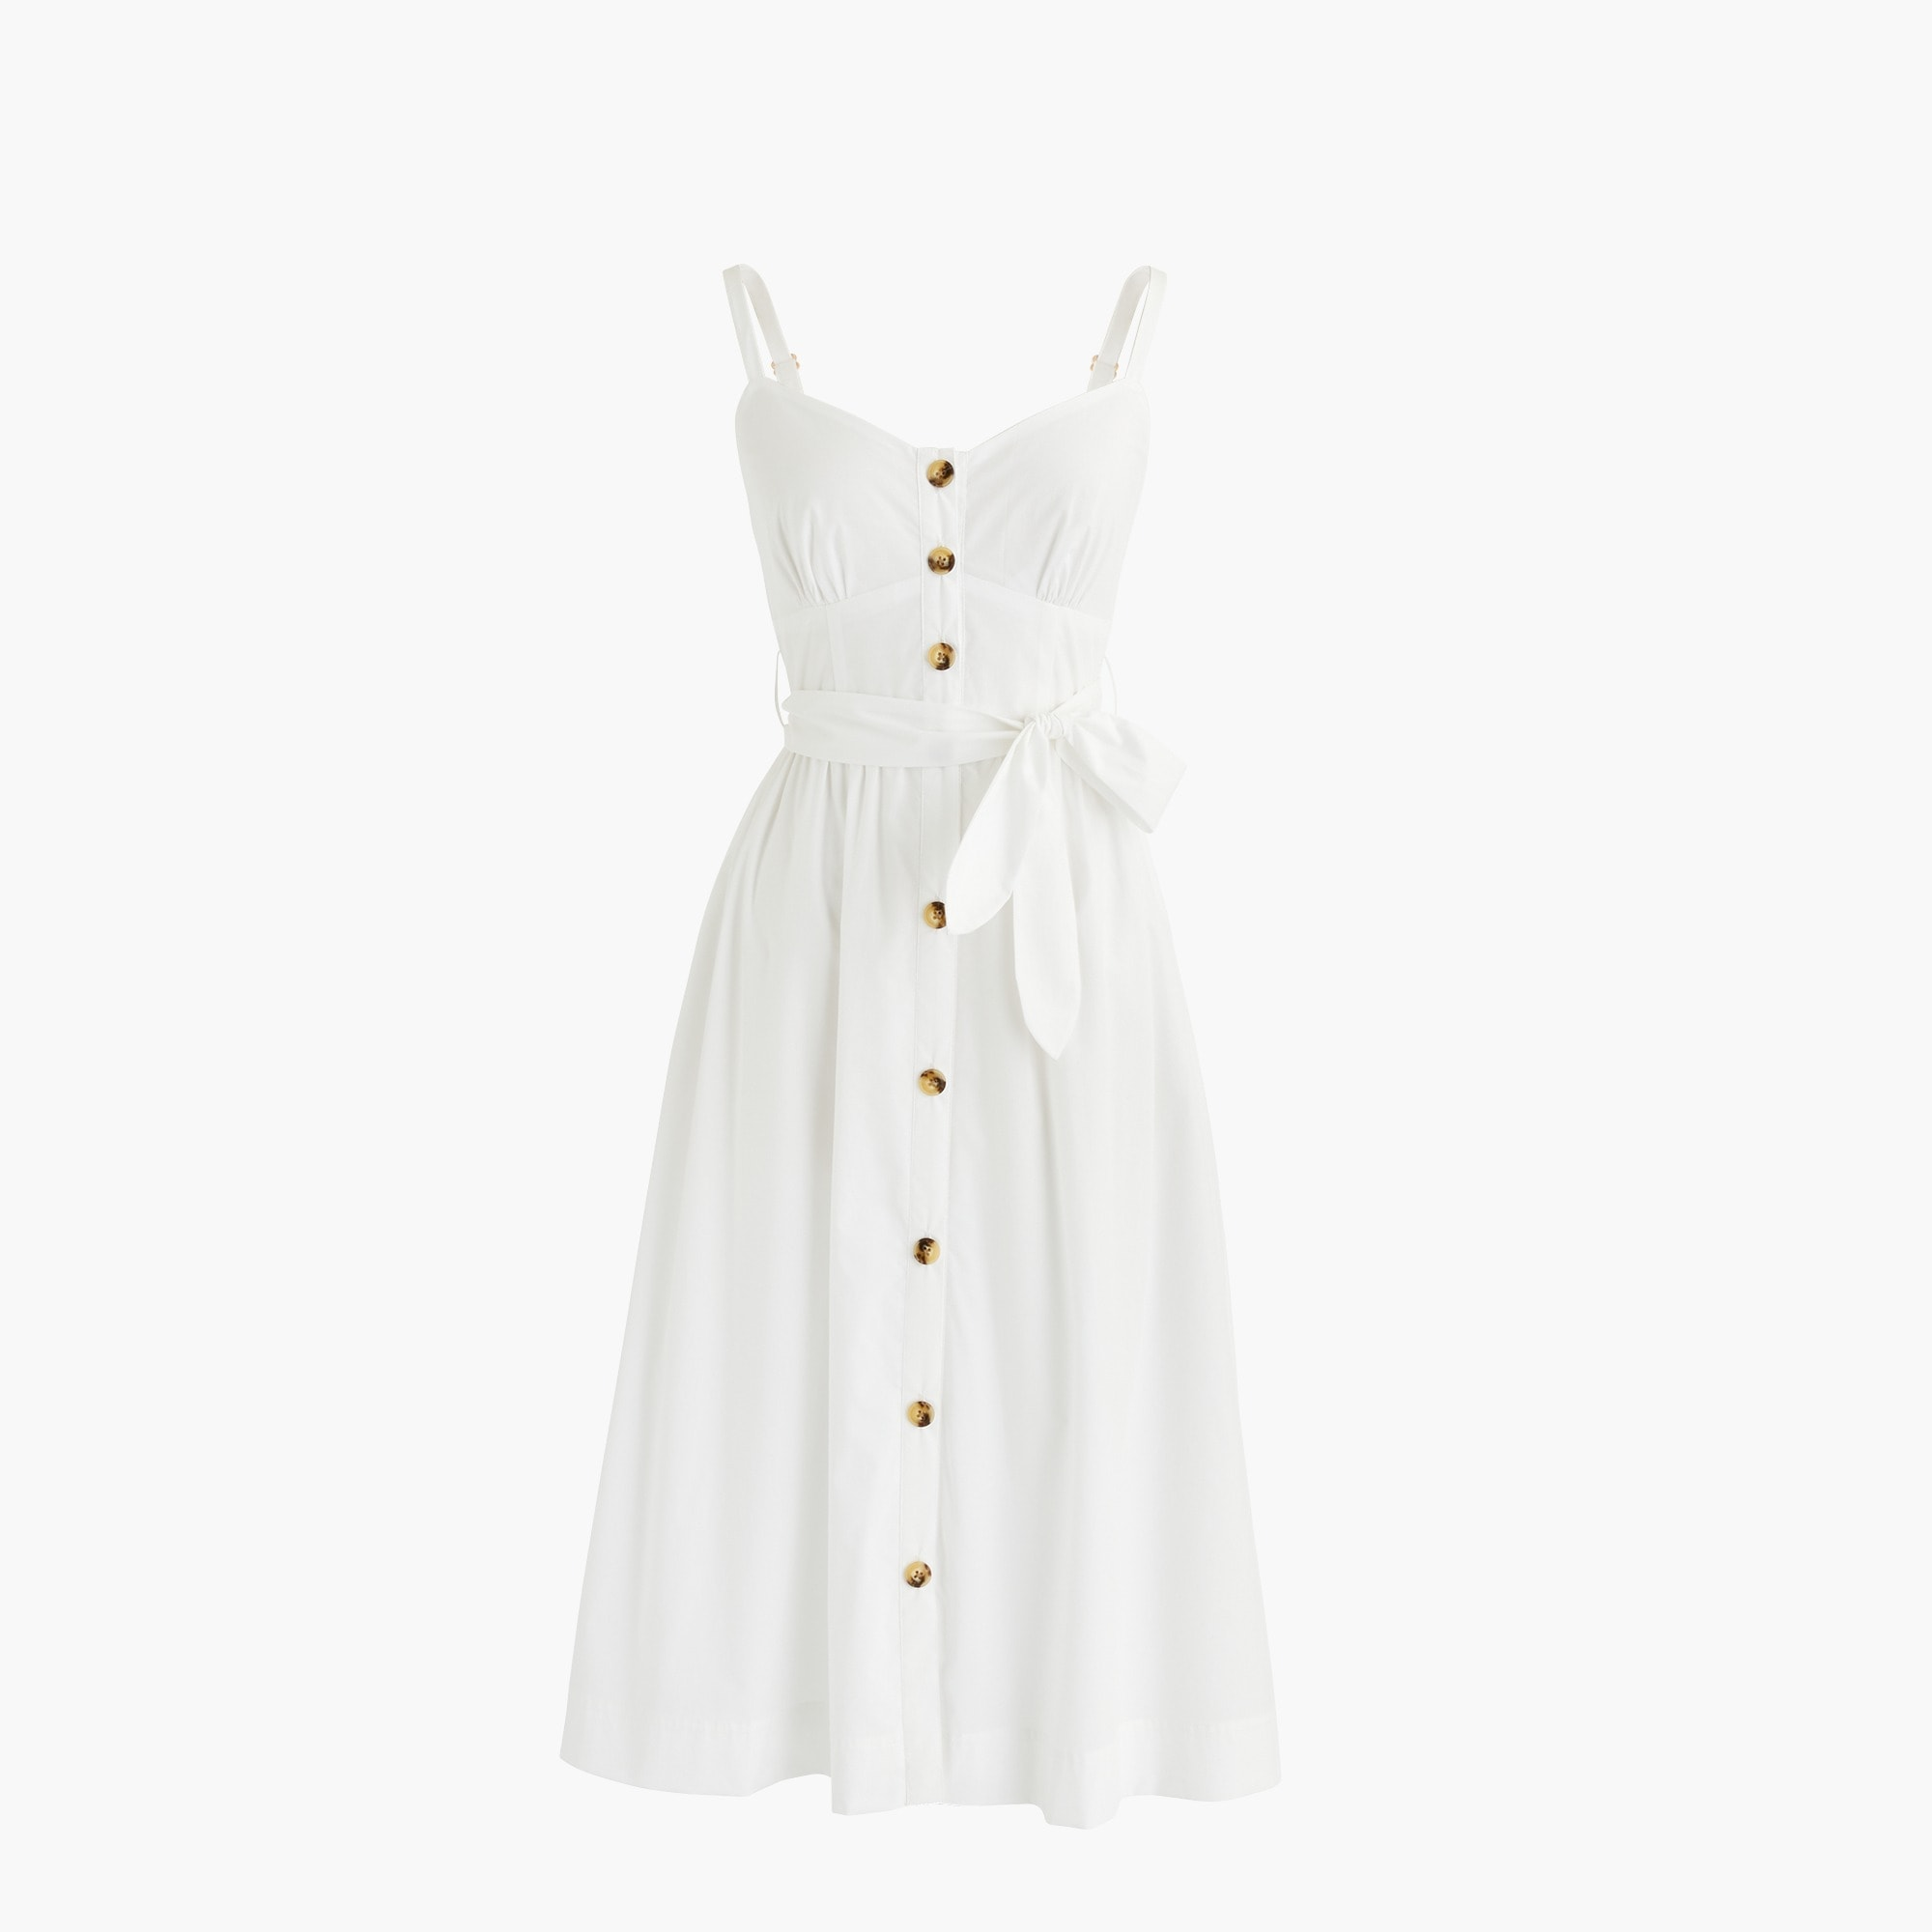 Tall classic button-front sundress in cotton poplin